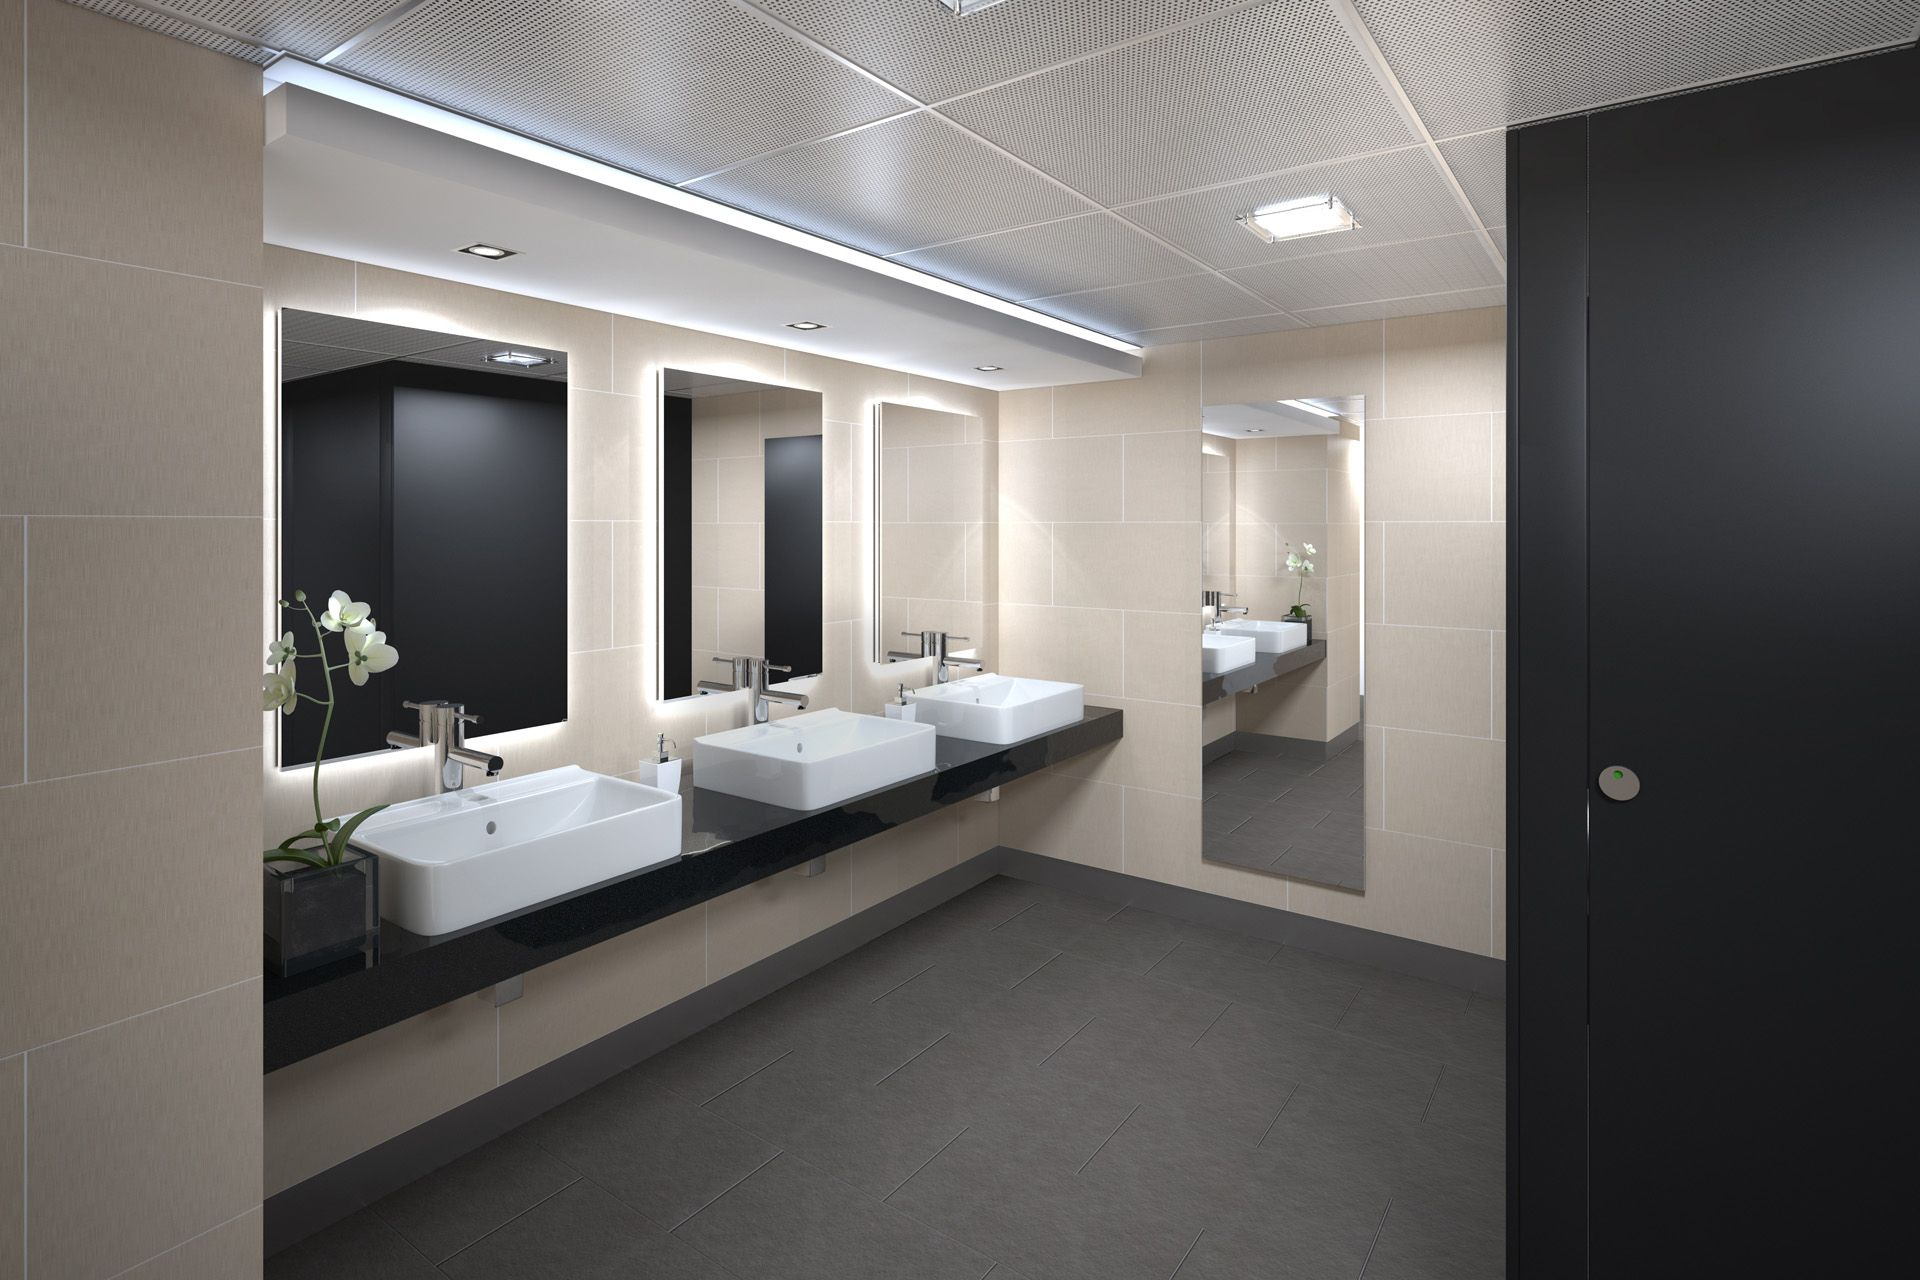 commercial bathroom design ideas  Commercial bathroom designs